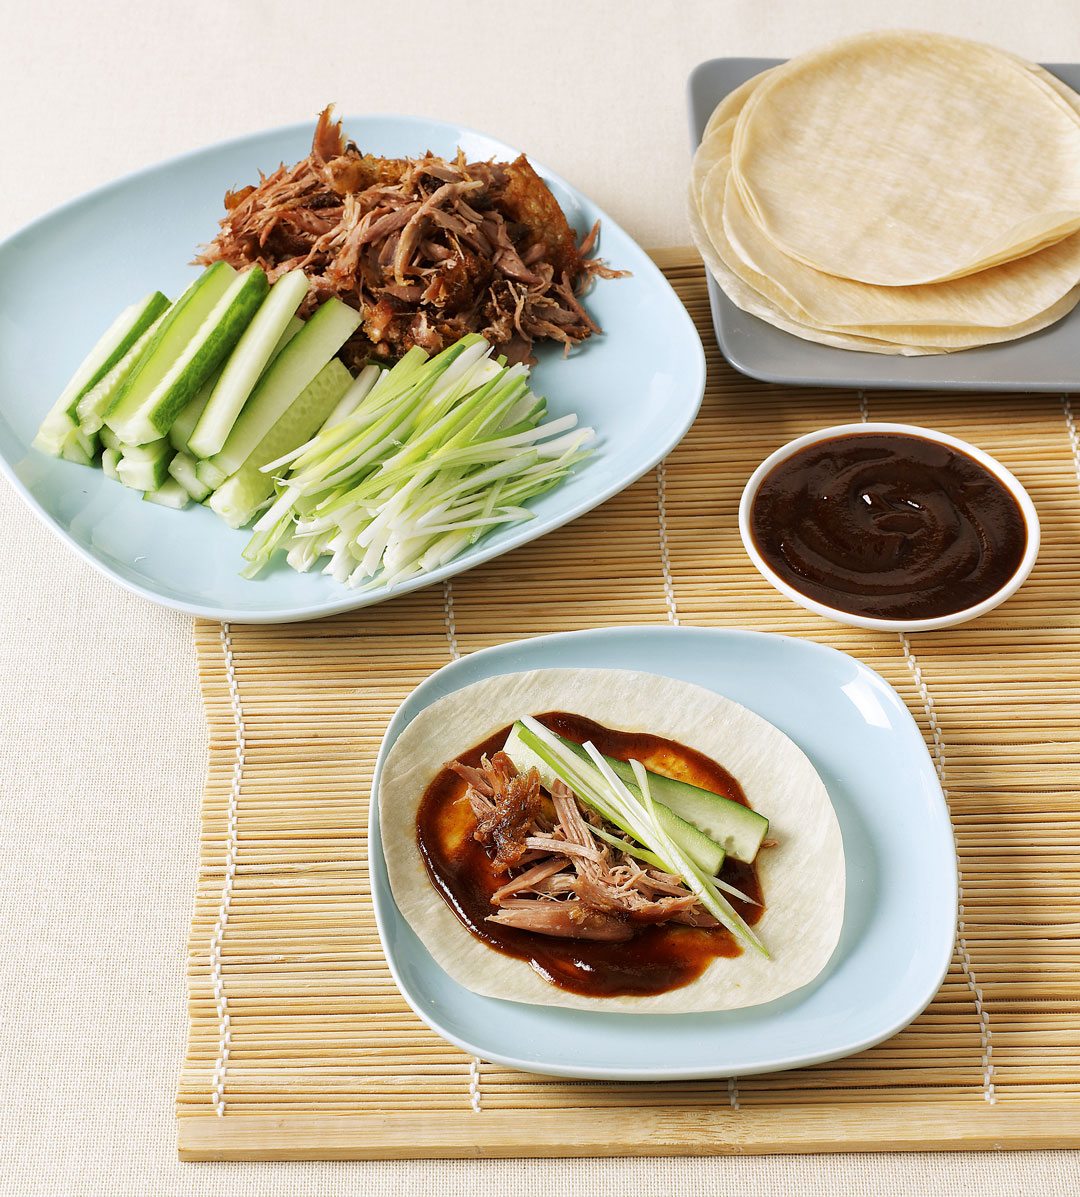 Crispy duck pancakes, from Simple & Classic by Jane Hornby